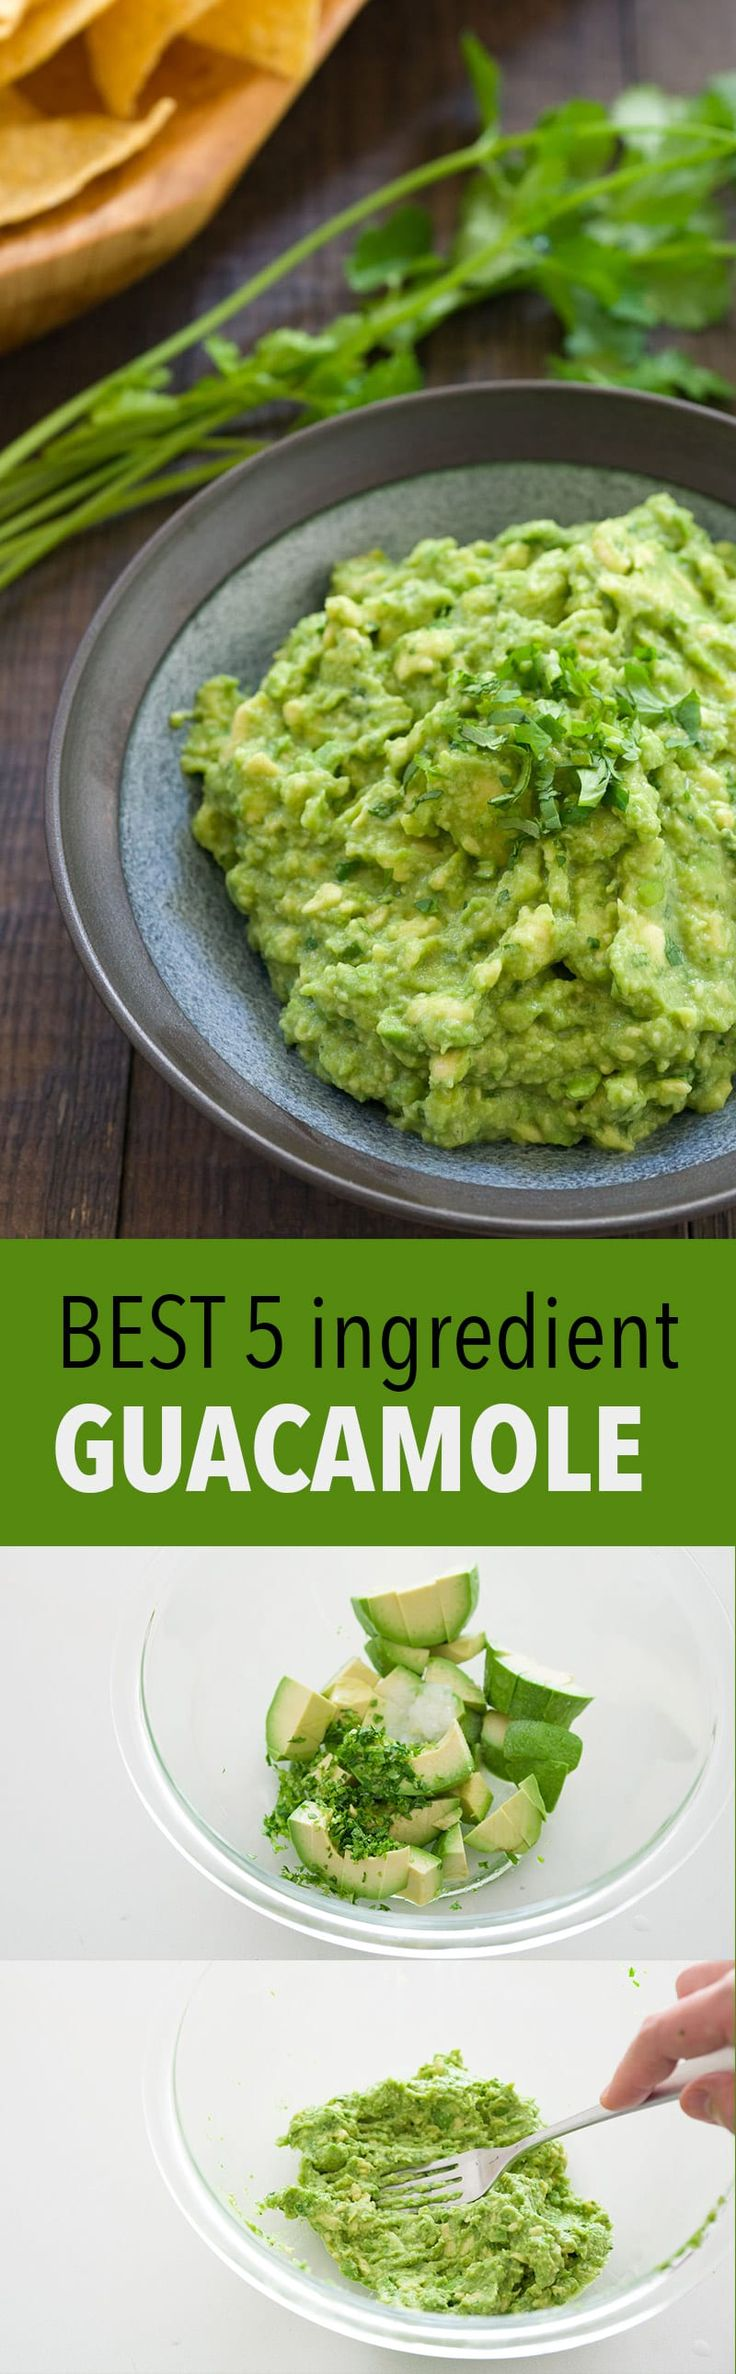 This awesome guacamole only has 5 basic ingredients and takes less than 5 minutes to make!